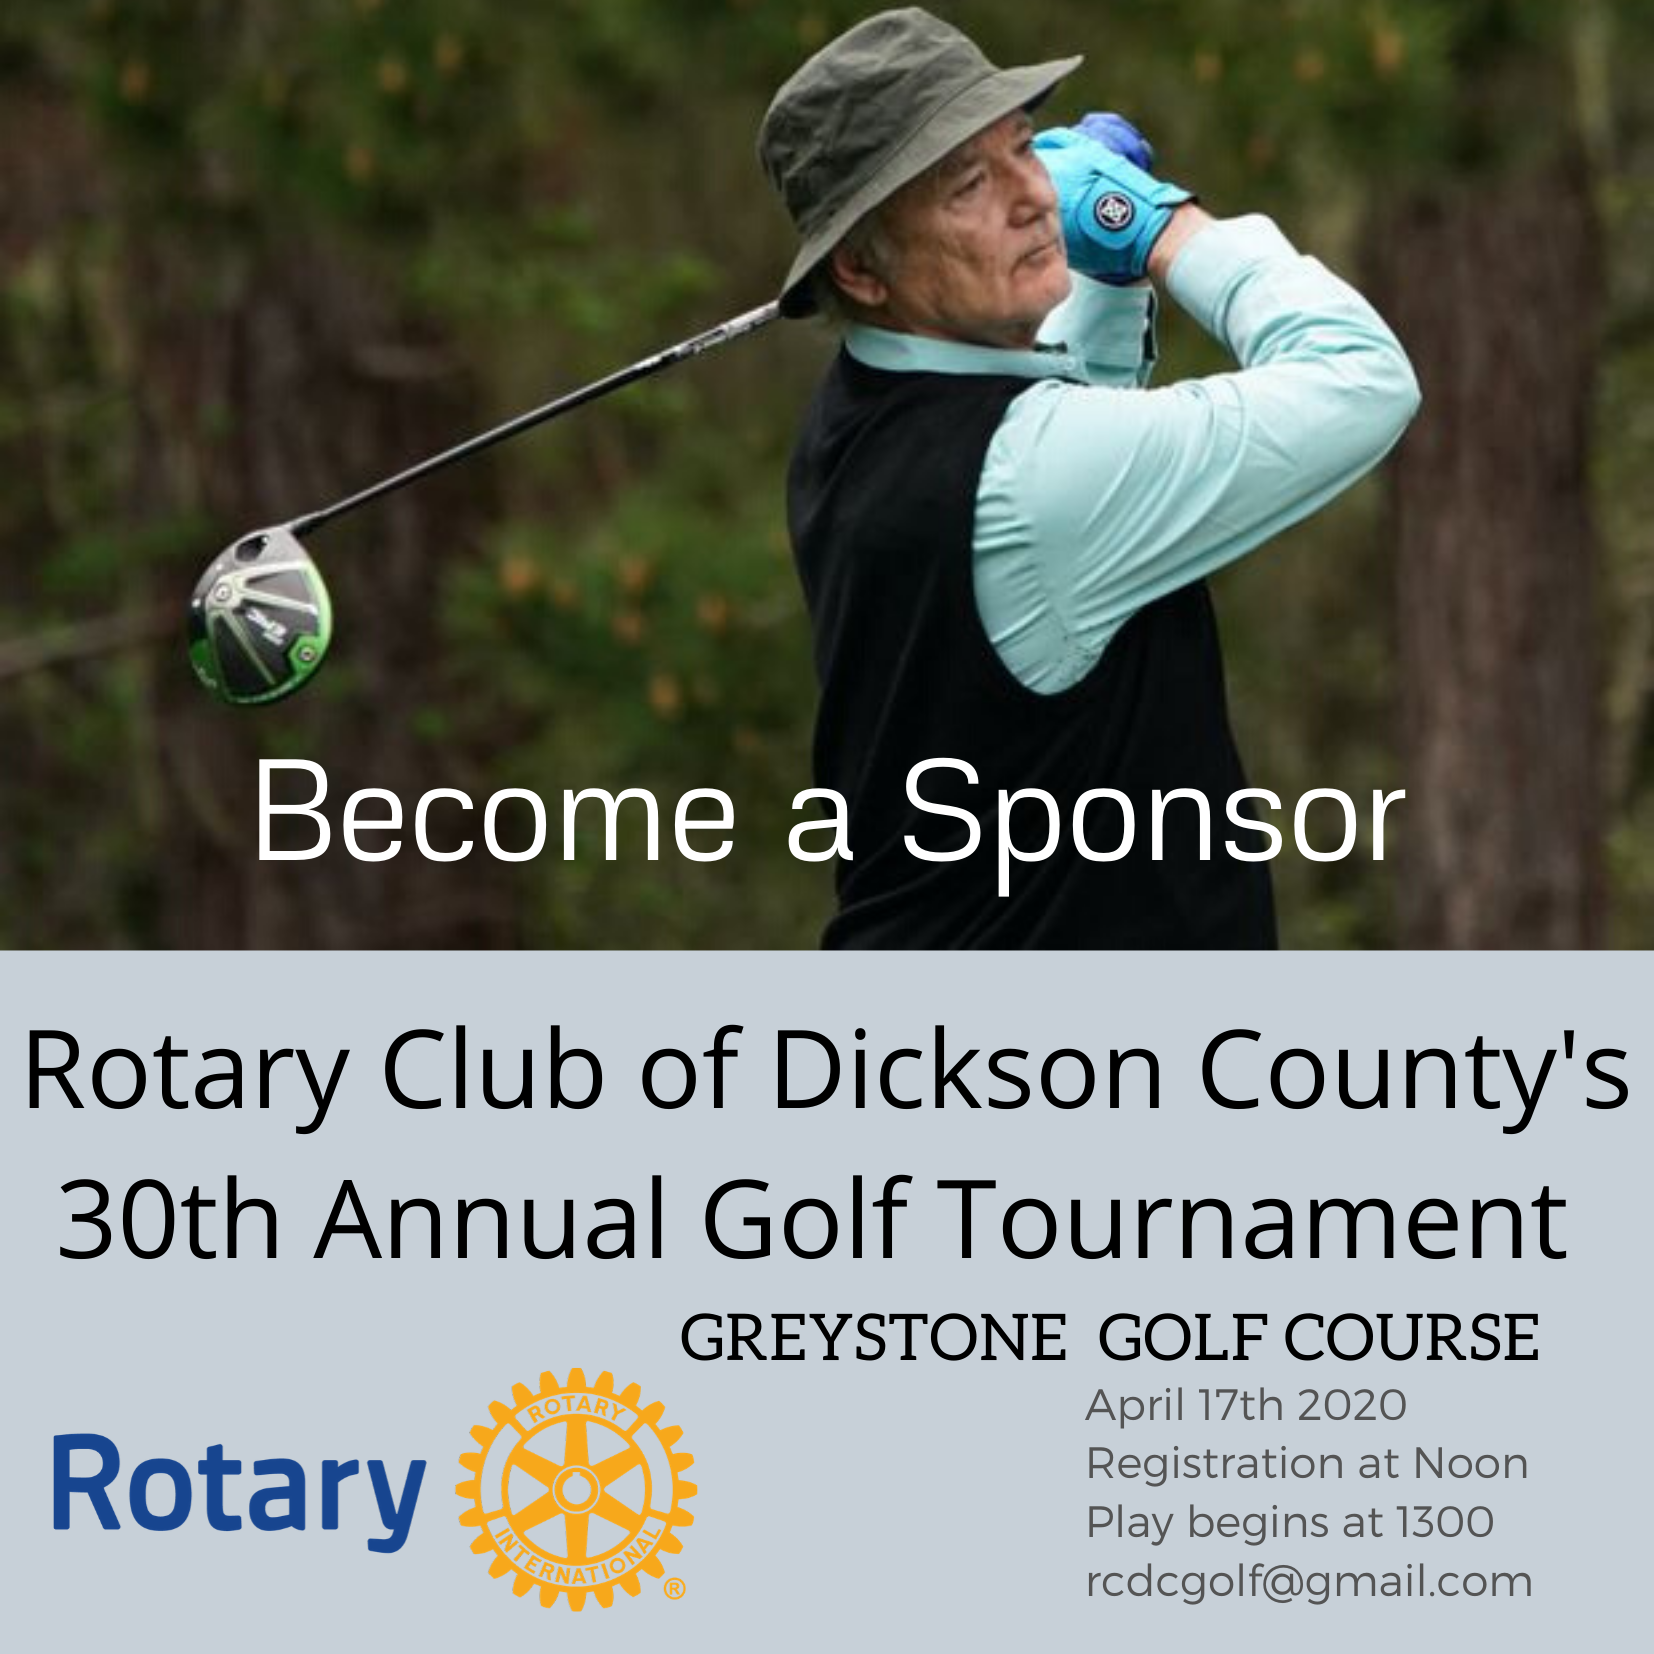 2021 Rotary Club of Dickson County Golf Tournament gallery image #2